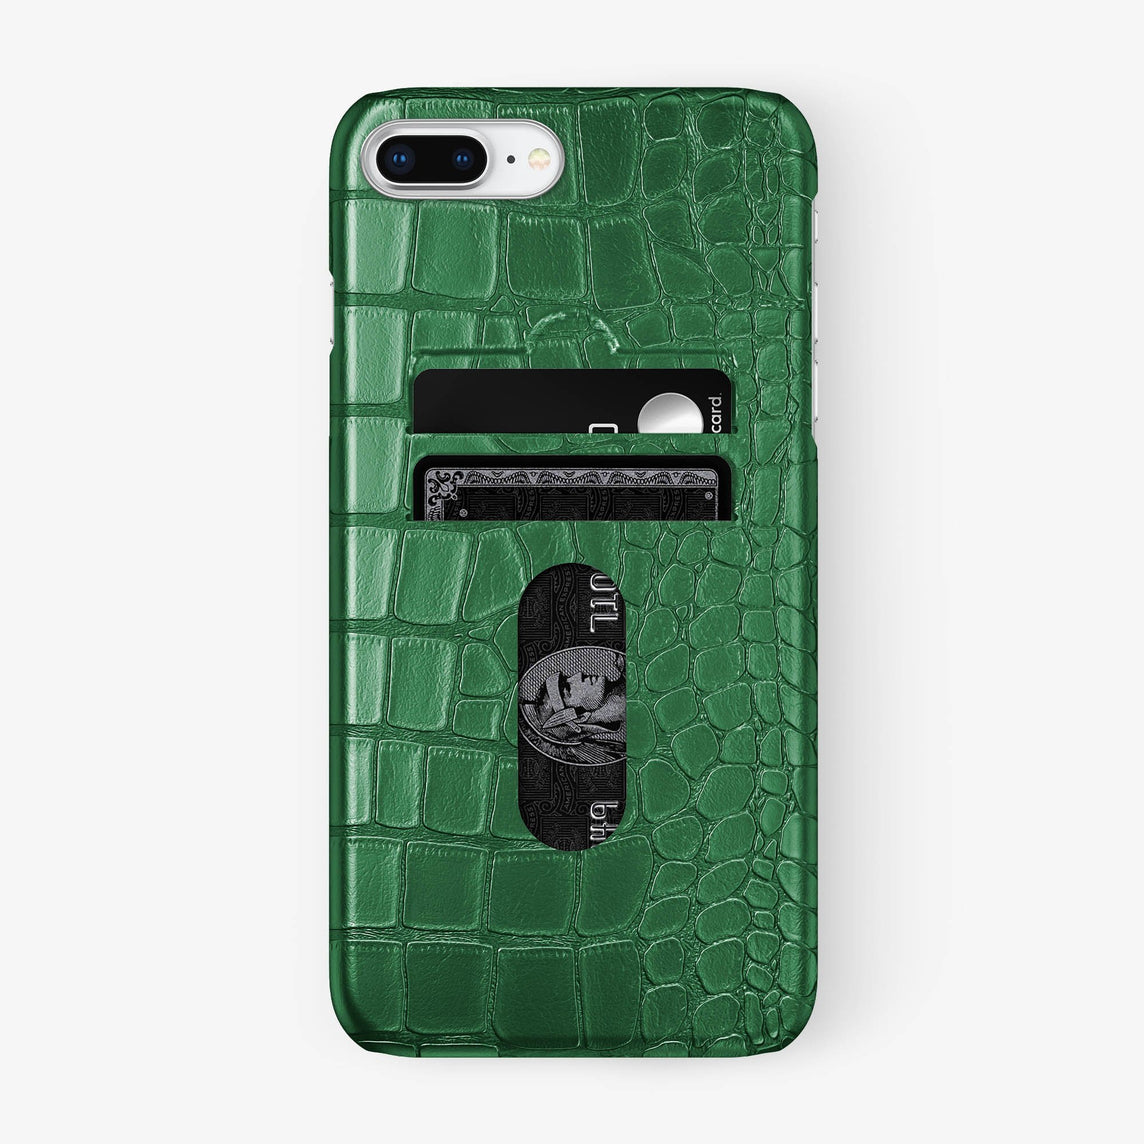 Alligator [iPhone Card Holder Case] [model:iphone-7p-8p-case] [colour:green] [finishing:stainless-steel] - Hadoro